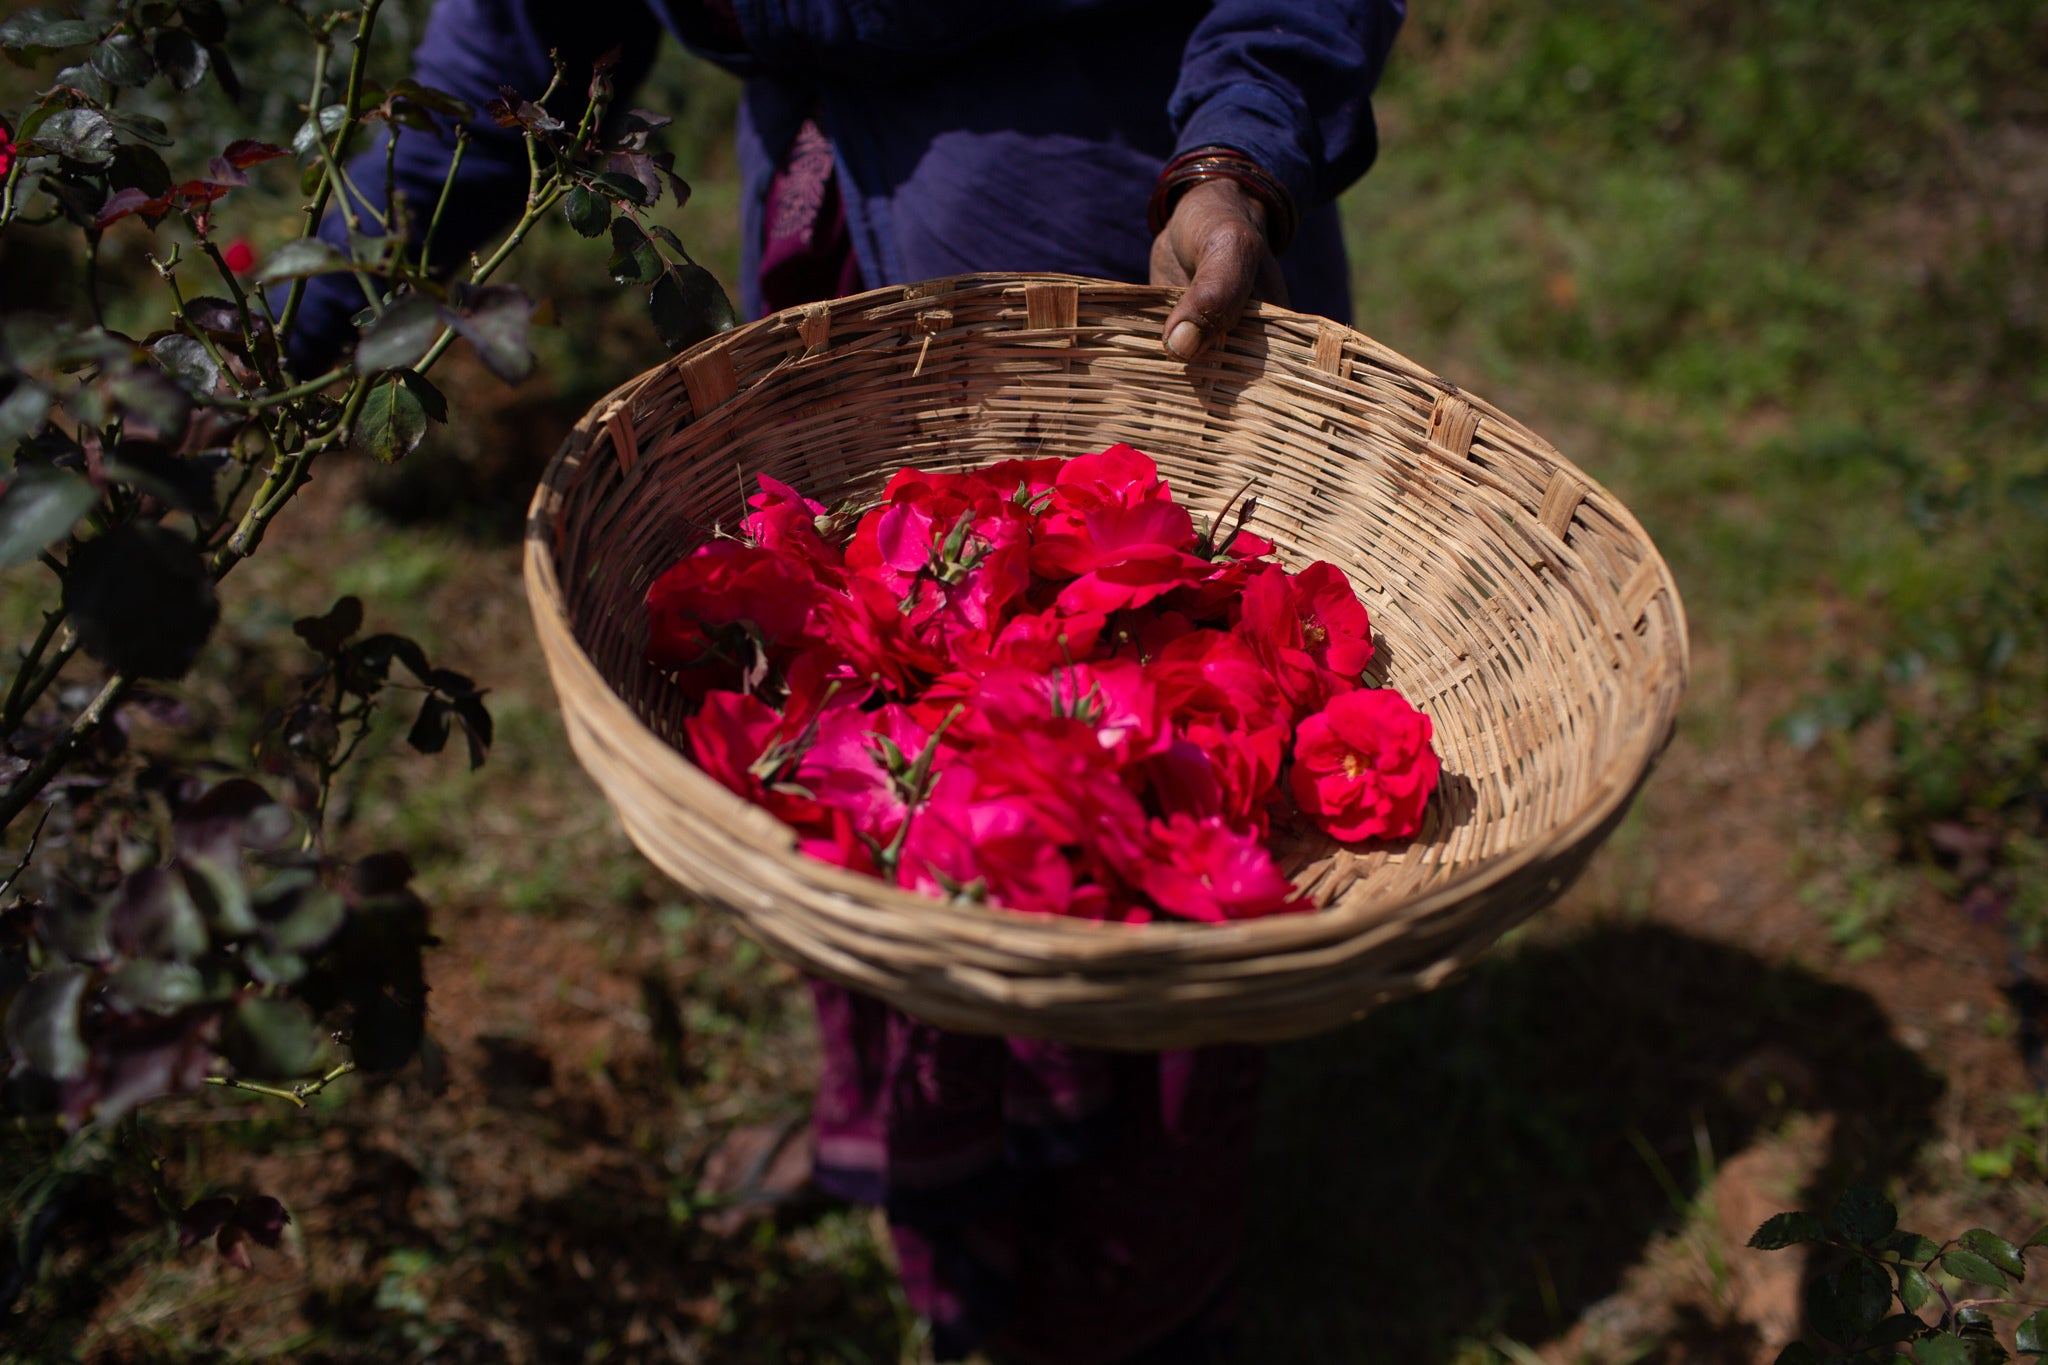 A basket full of just harvested Panneer roses